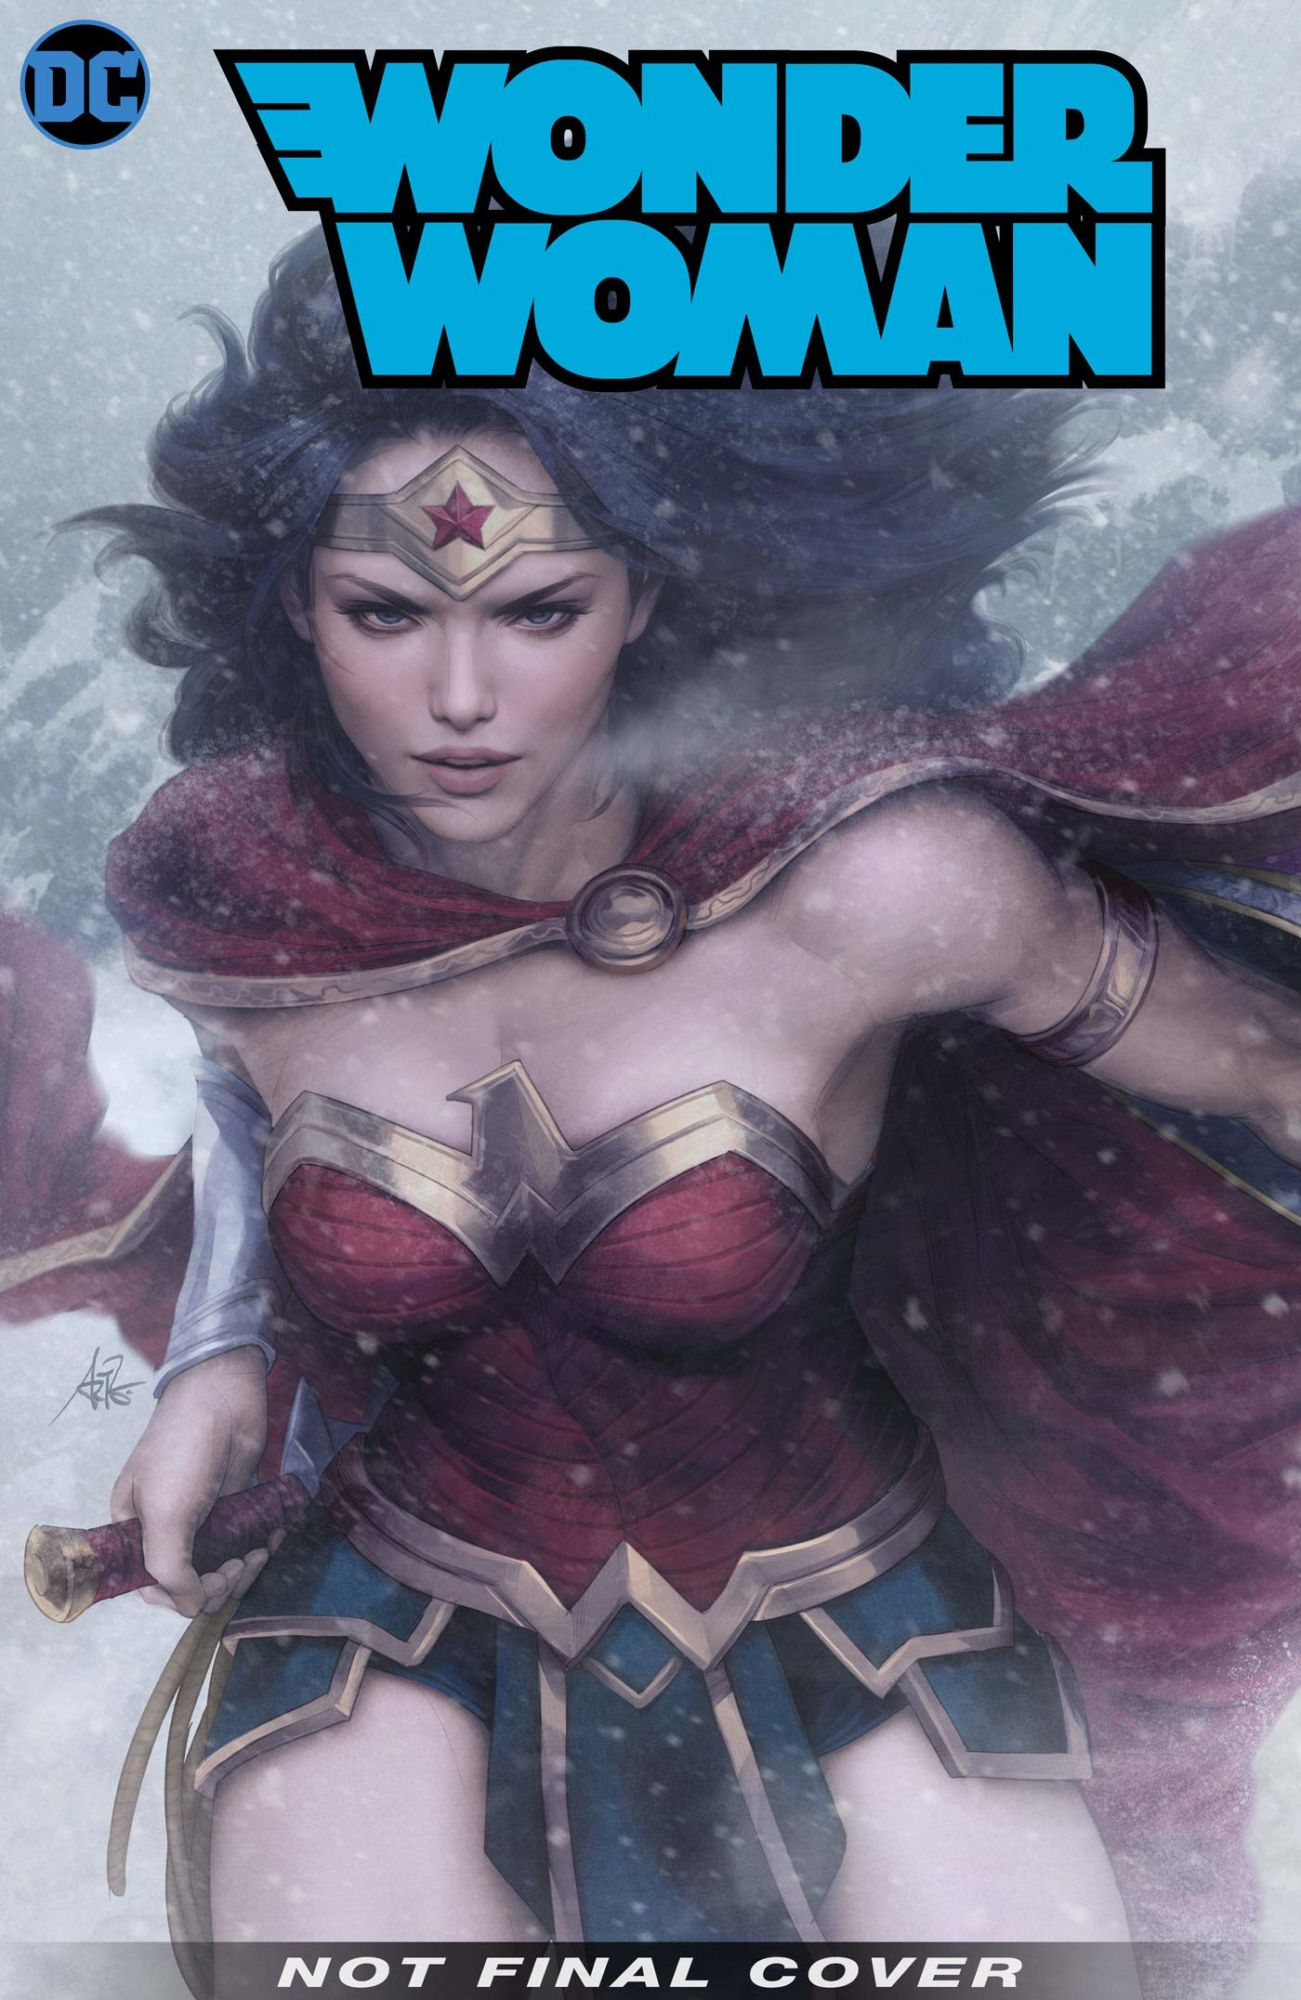 DC Publishes Wonder Woman 1984, 80 Years of The Joker, City Of Bane Tie-Ins and More Big Books in 2020